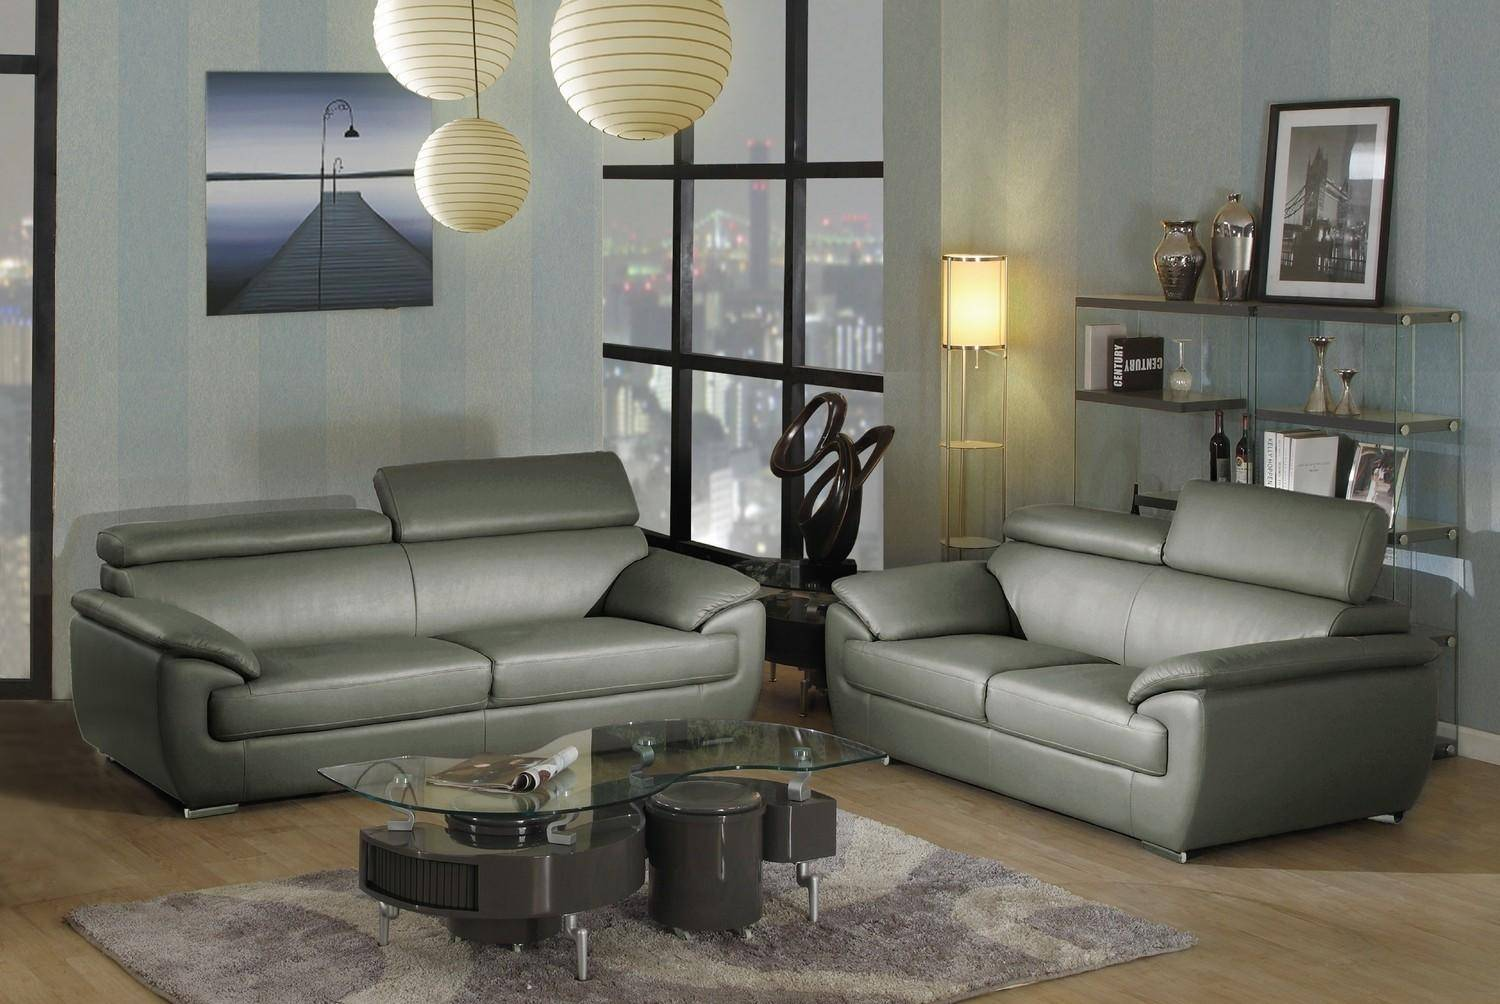 Super Contemporary Gray Leather Match Sofa Loveseat Set 2Pcs Andrewgaddart Wooden Chair Designs For Living Room Andrewgaddartcom